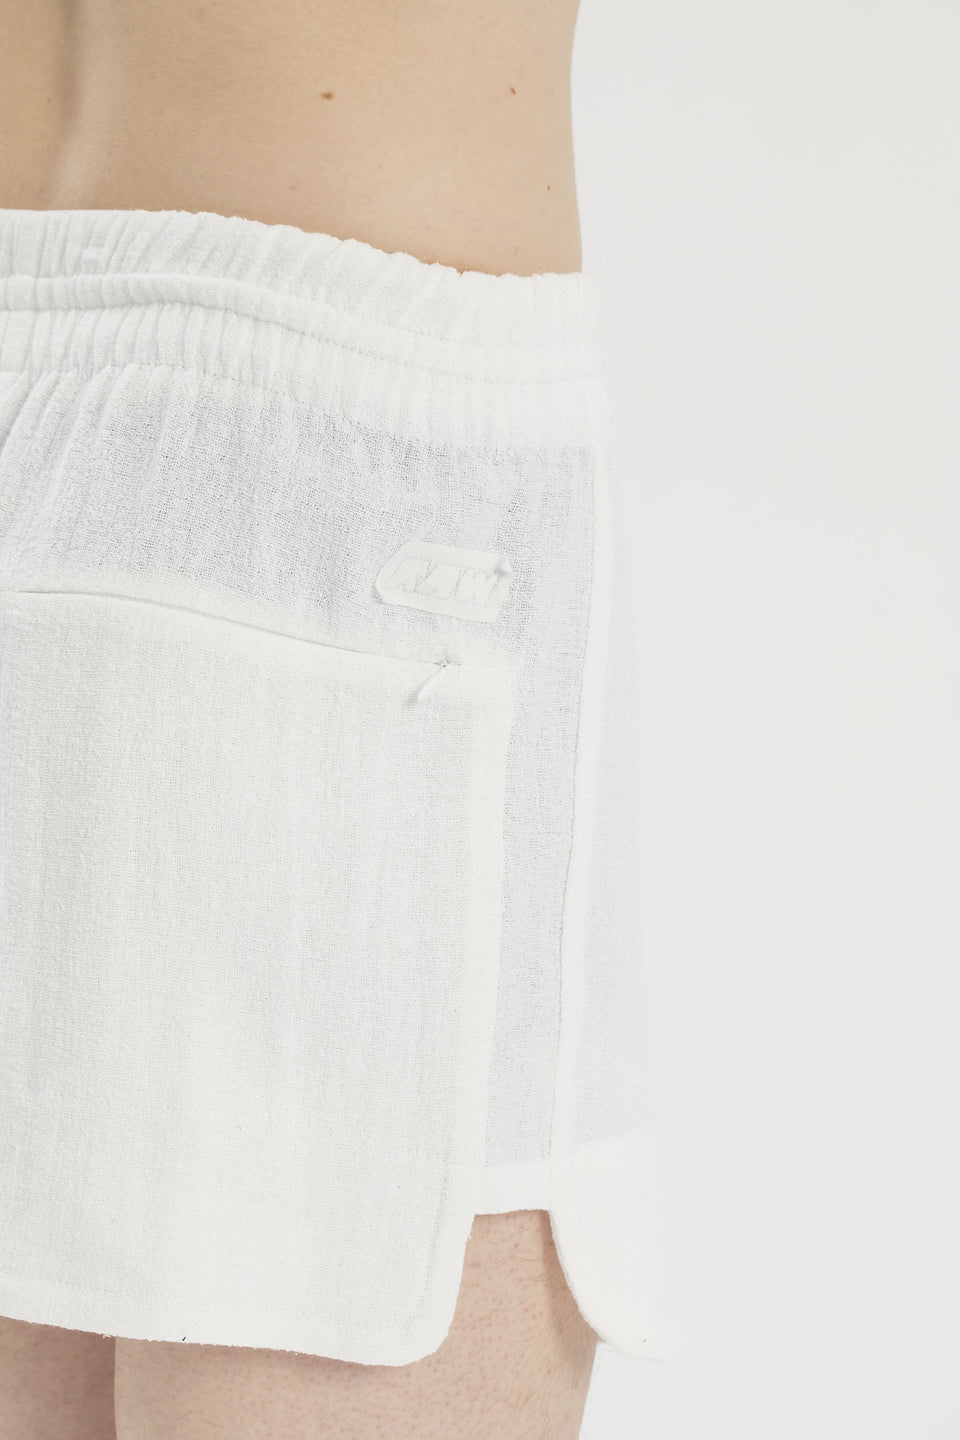 RAW Men Running Shorts White